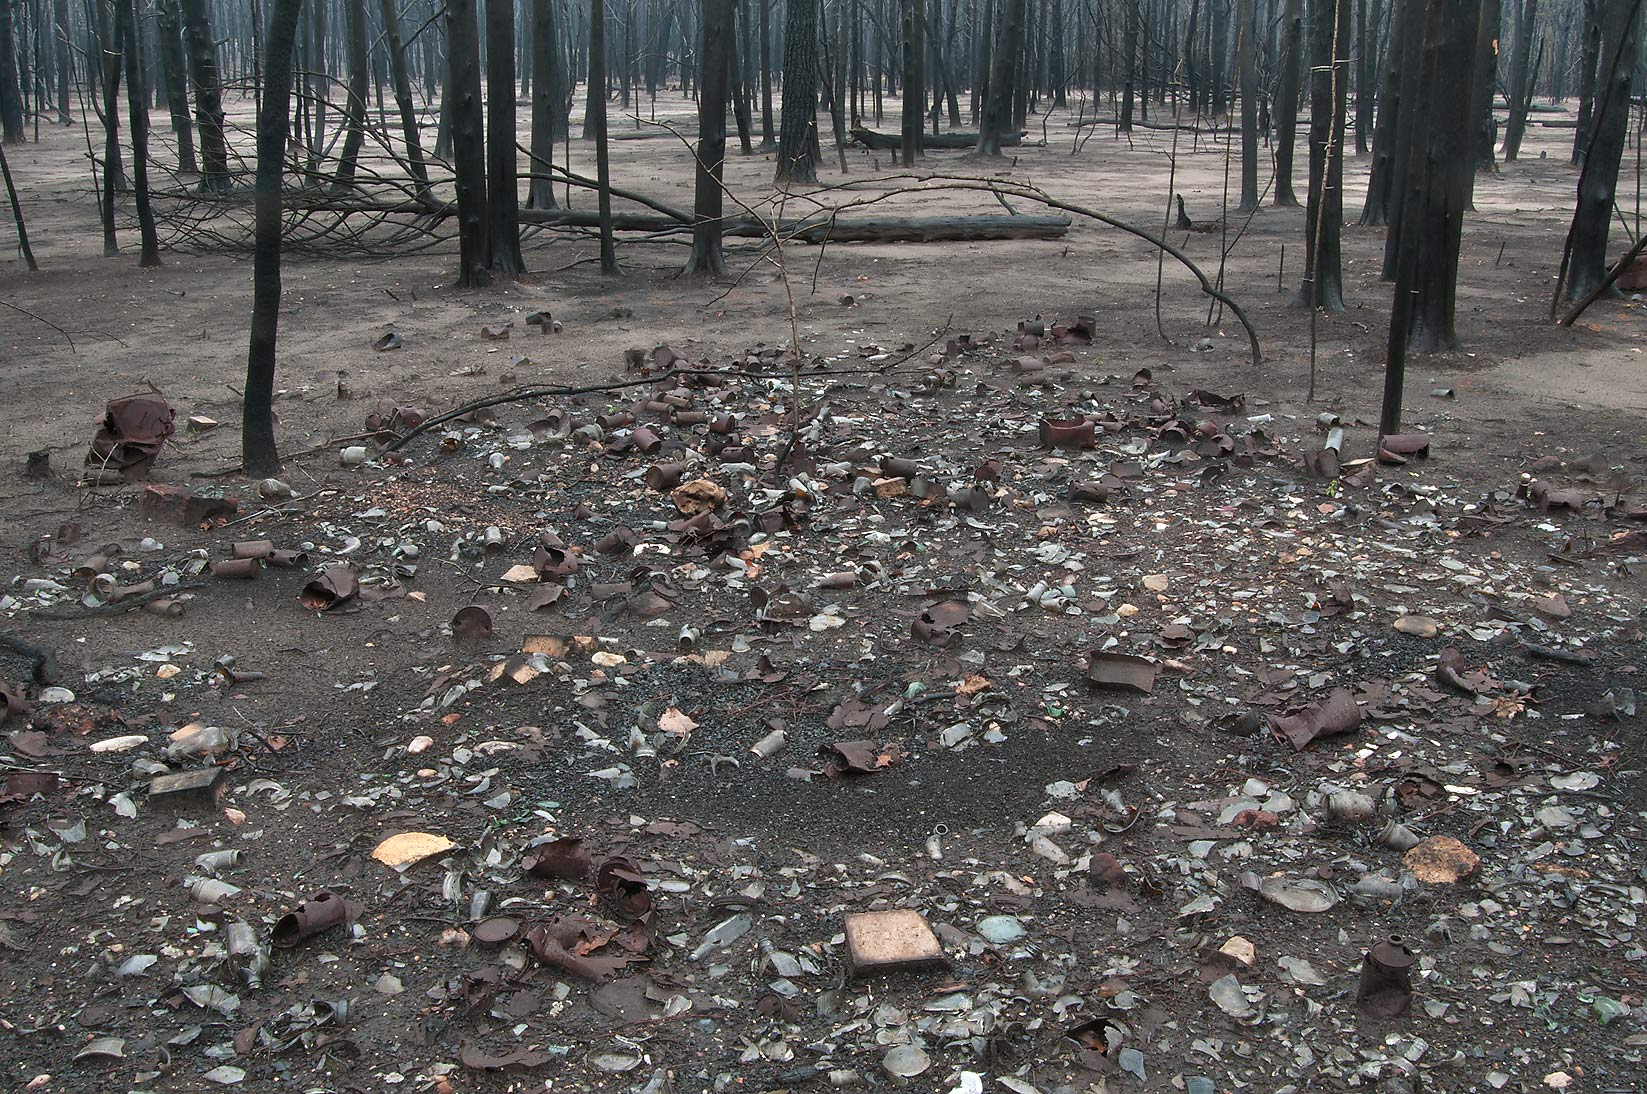 Old camping trash disposal revealed by fire in Bastrop State Park. Bastrop, Texas